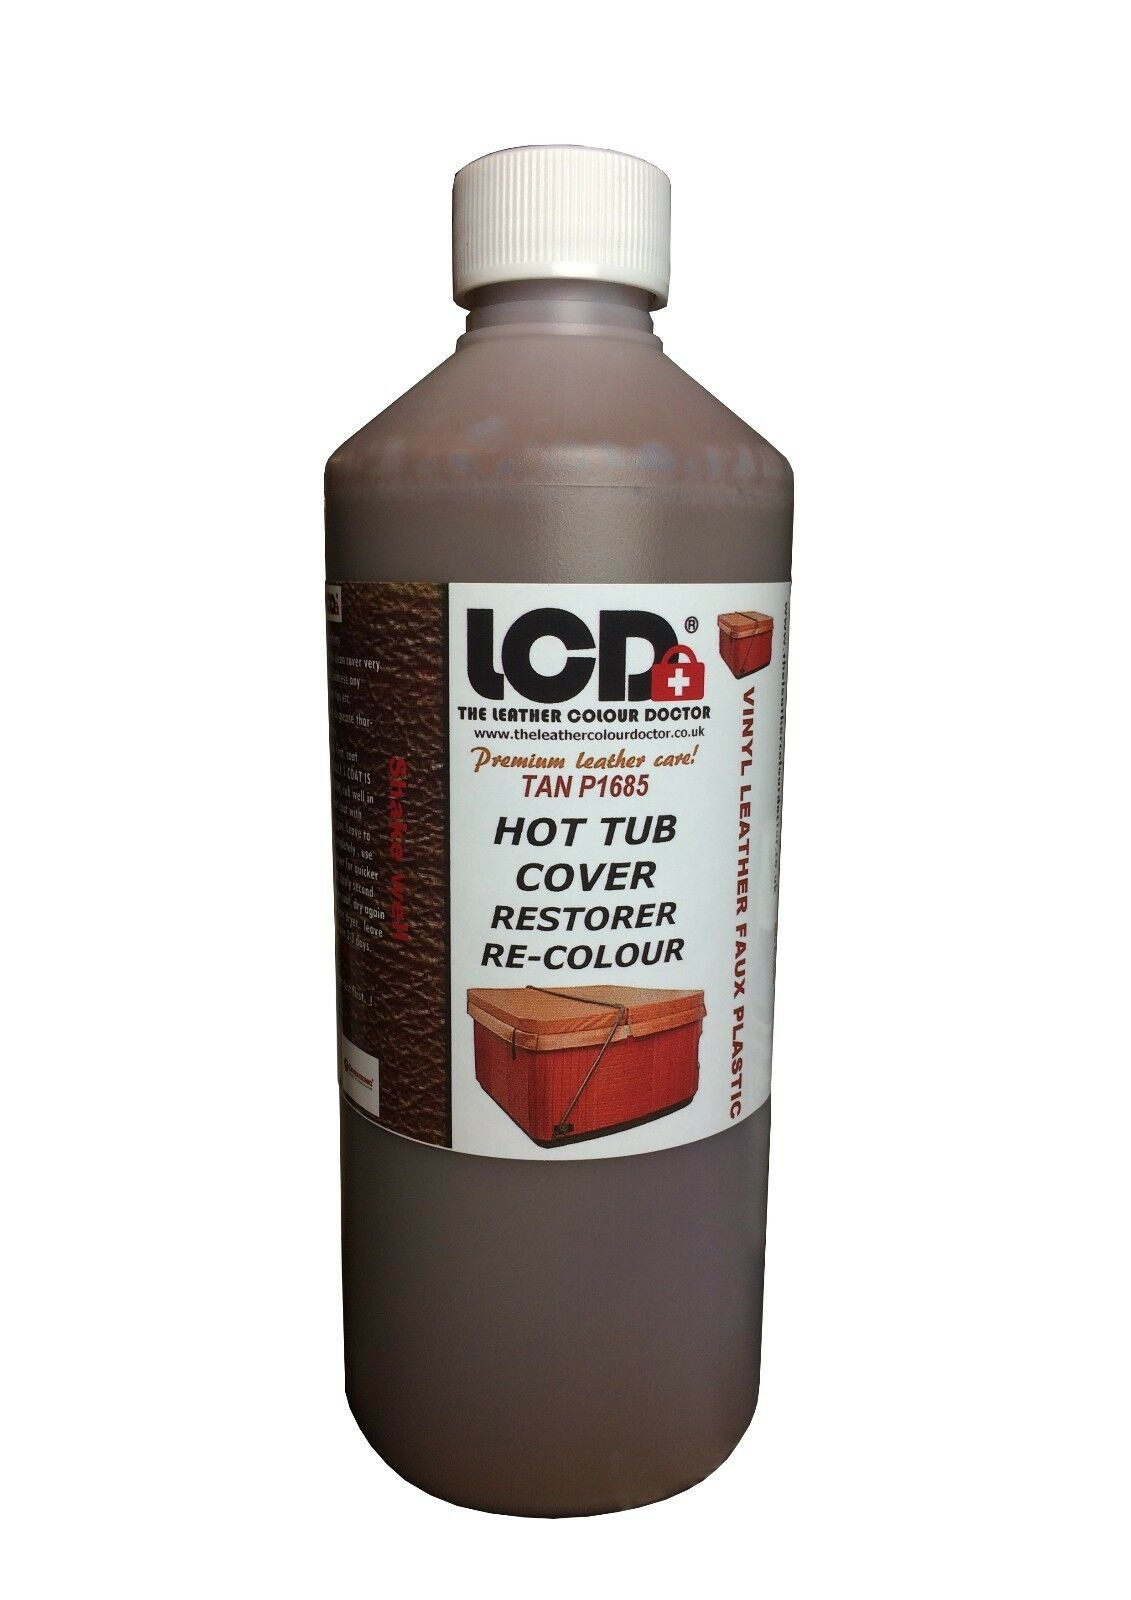 Hot Tub cover restorer cleaner re-colour restoration kit Vinyl Leather Plastic .